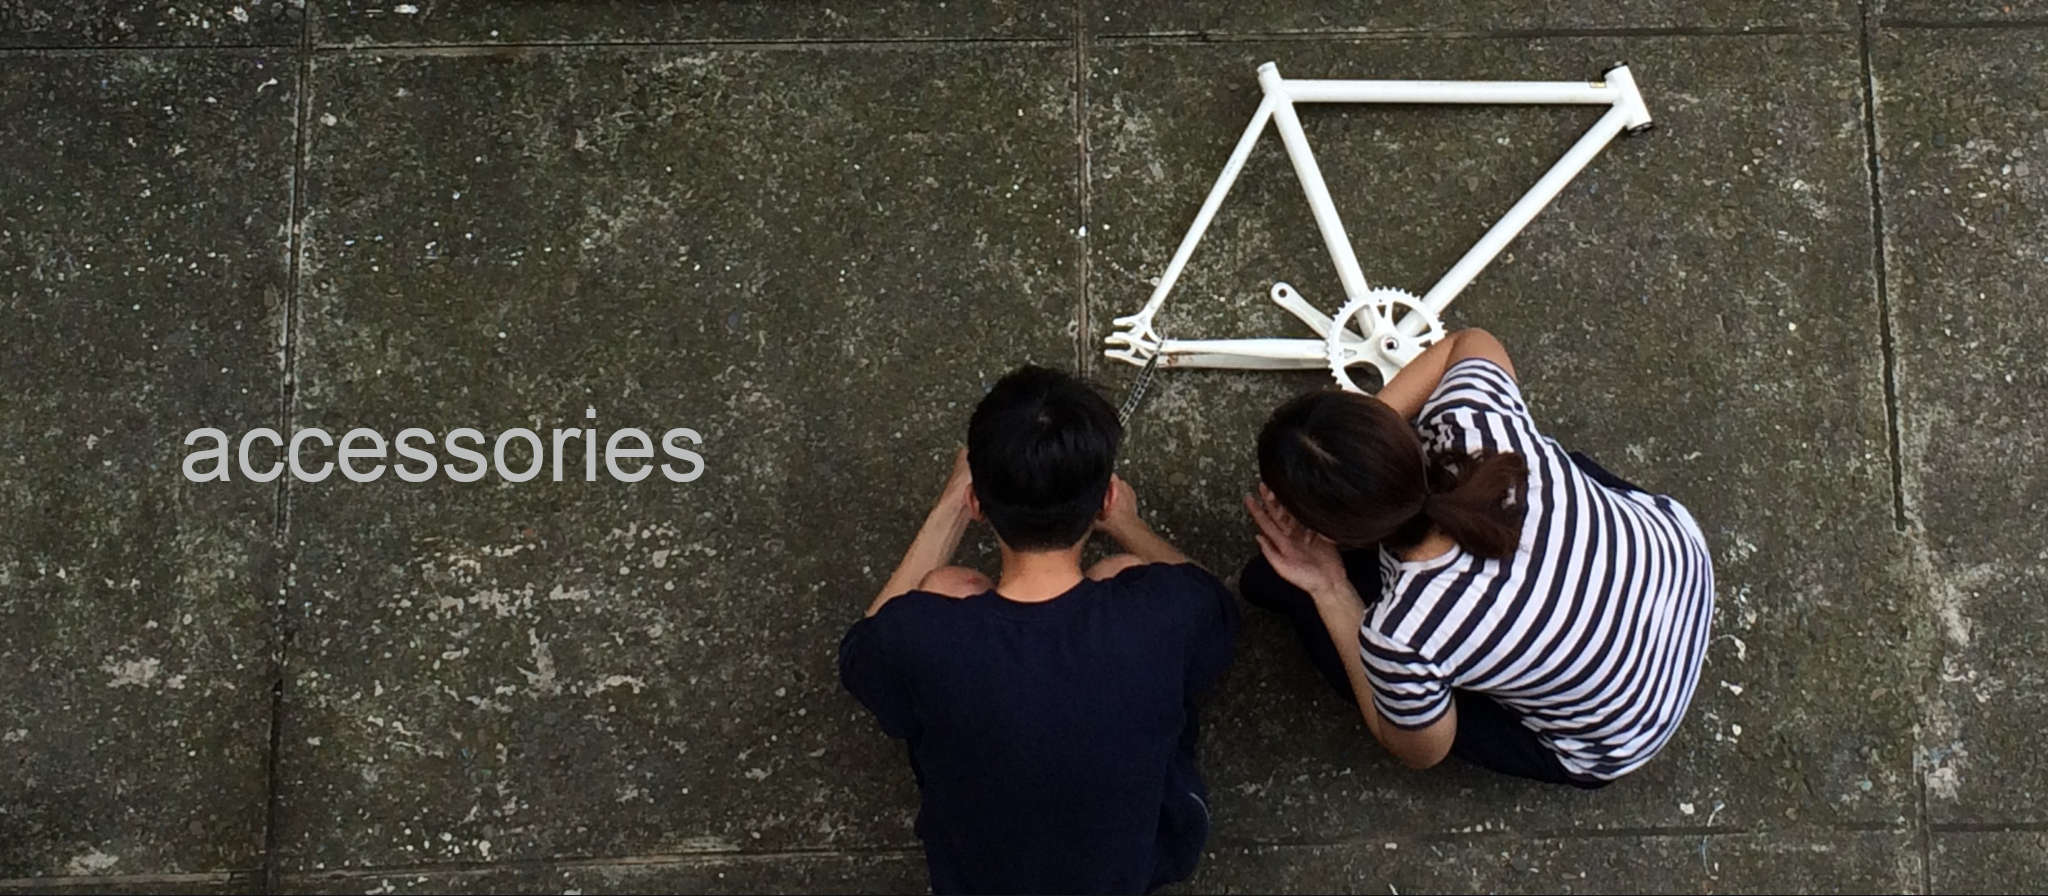 Upside Accessories collection - man & woman with bicycle frame